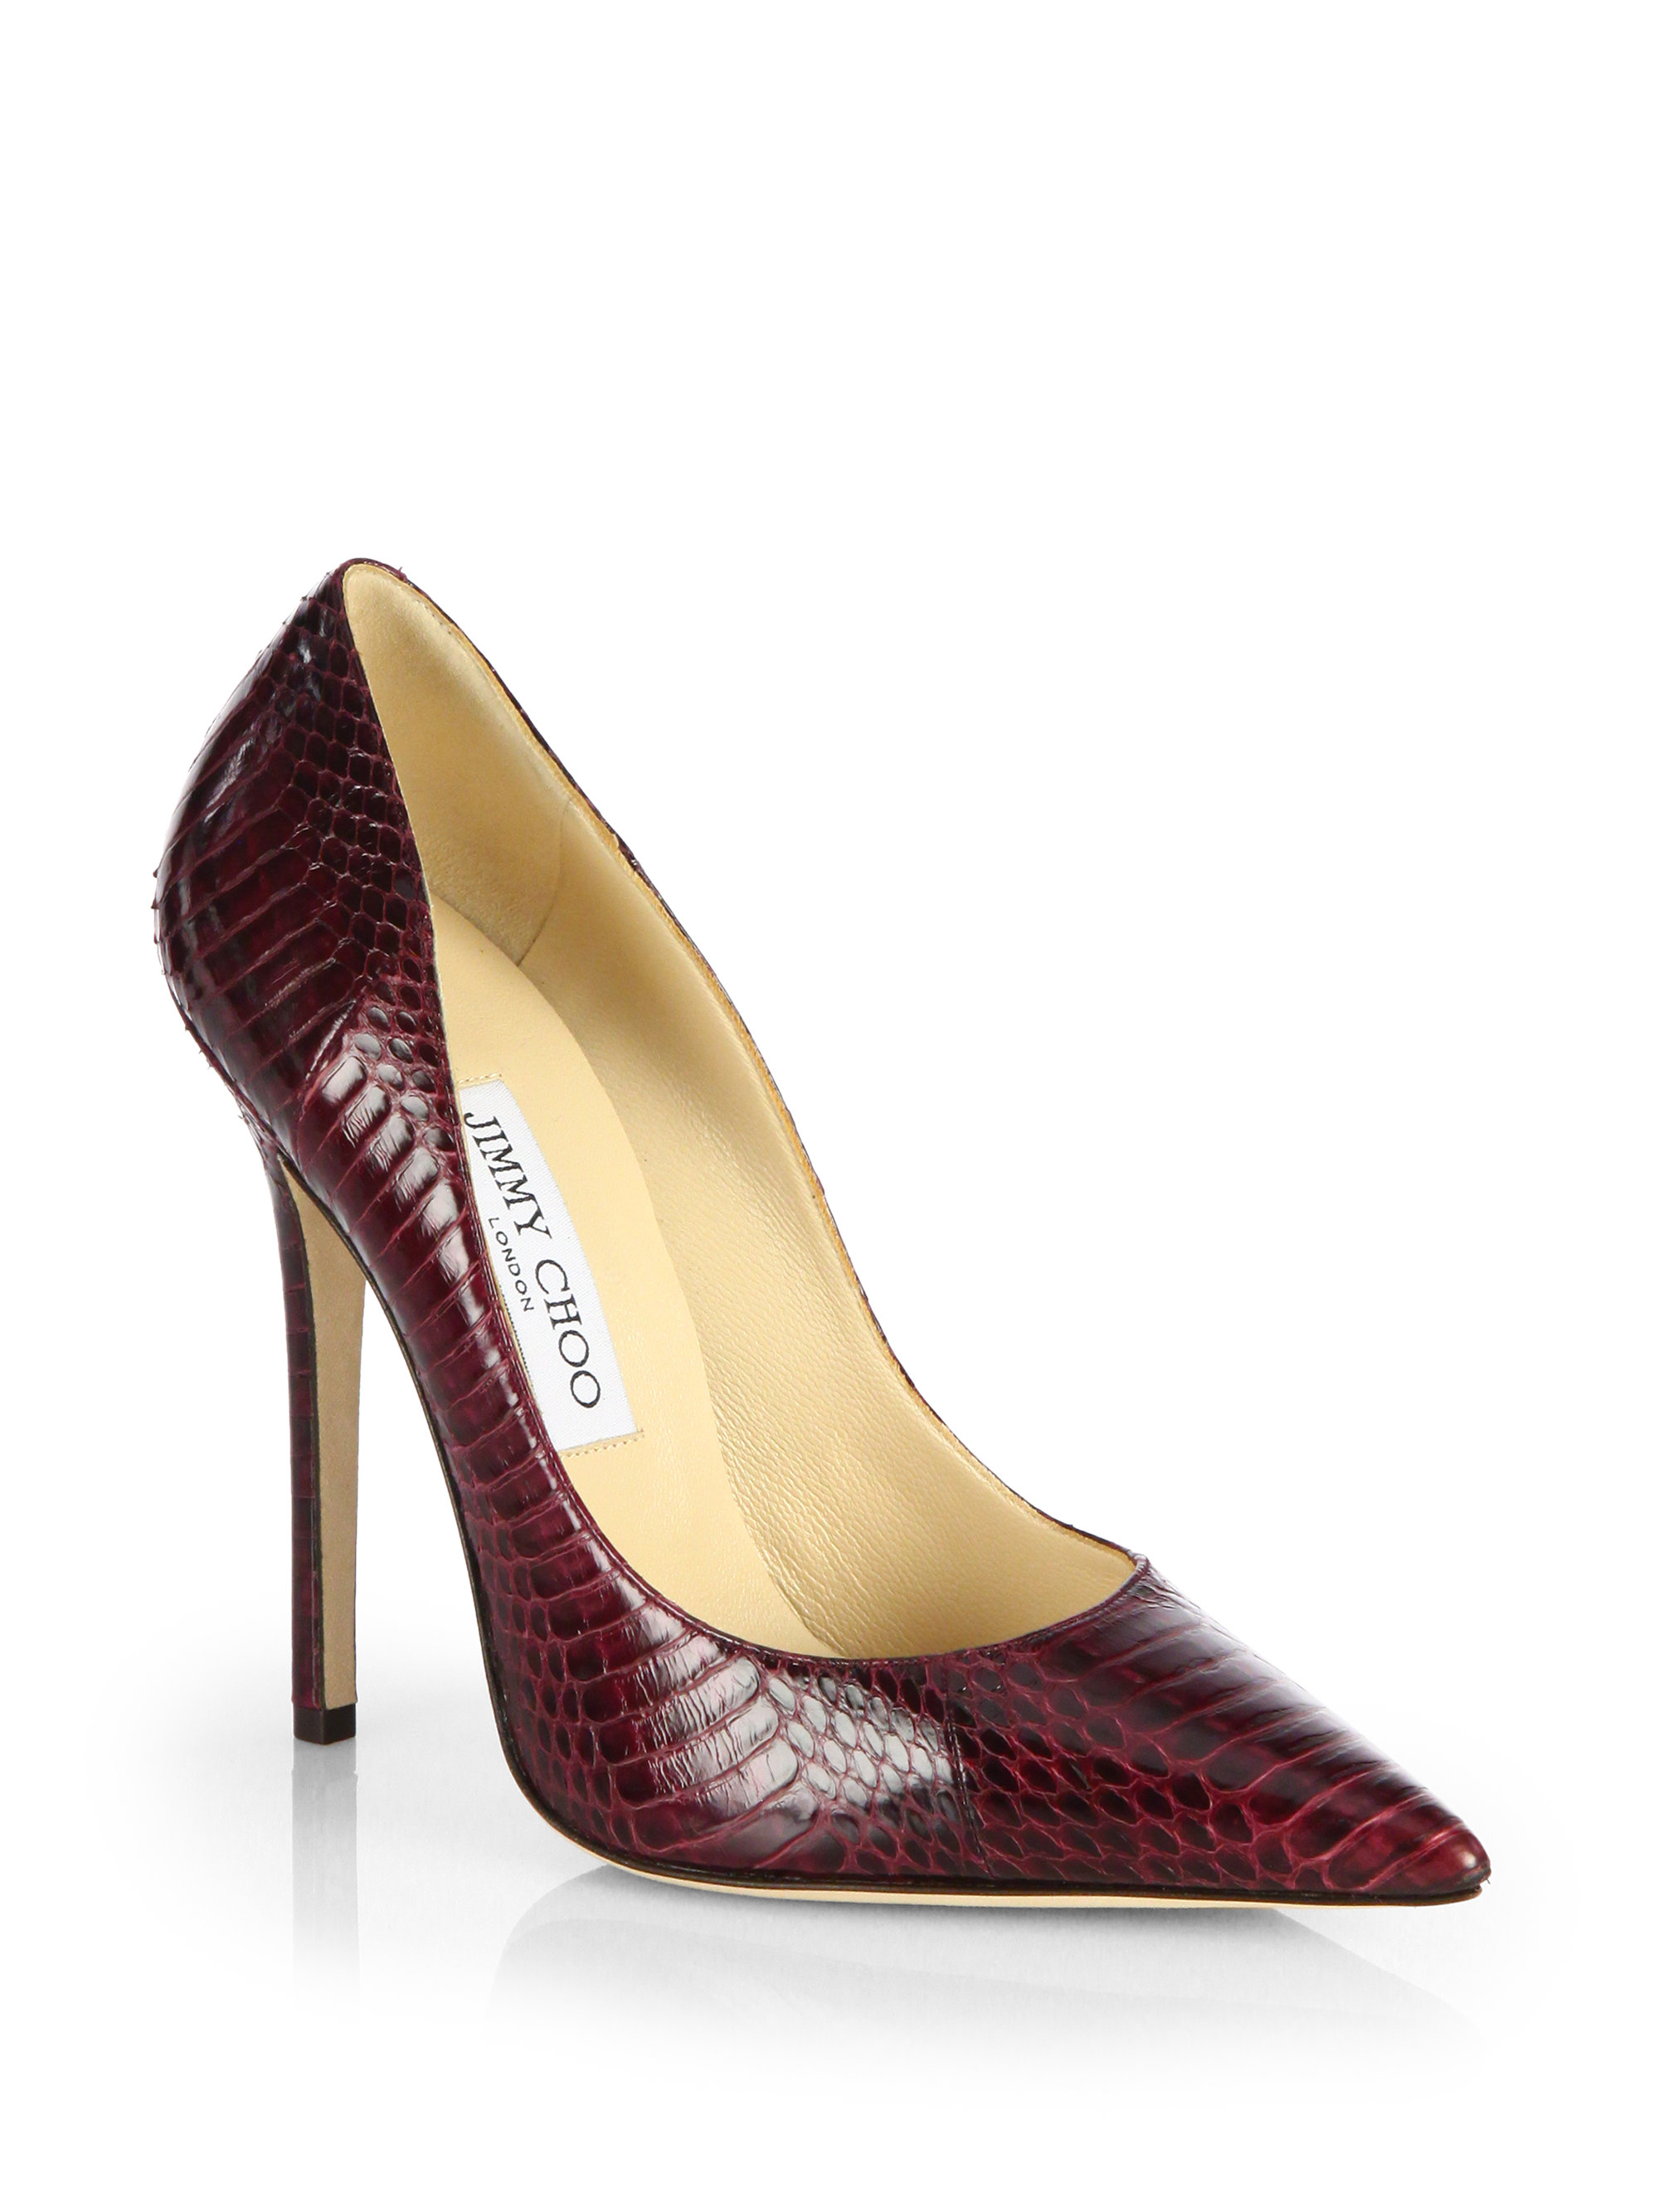 Red Snake Leather Heels – Erotique Shoe Sex. by admin 23 June Erotique Shoe Sex, Shoejob 0. Red Snake Leather Heels – Erotique Shoe Sex. High heels made with a sexy red snake skin with an ankle band clasp, very classy and very sensual. Eric kisses the foot and the shoes .